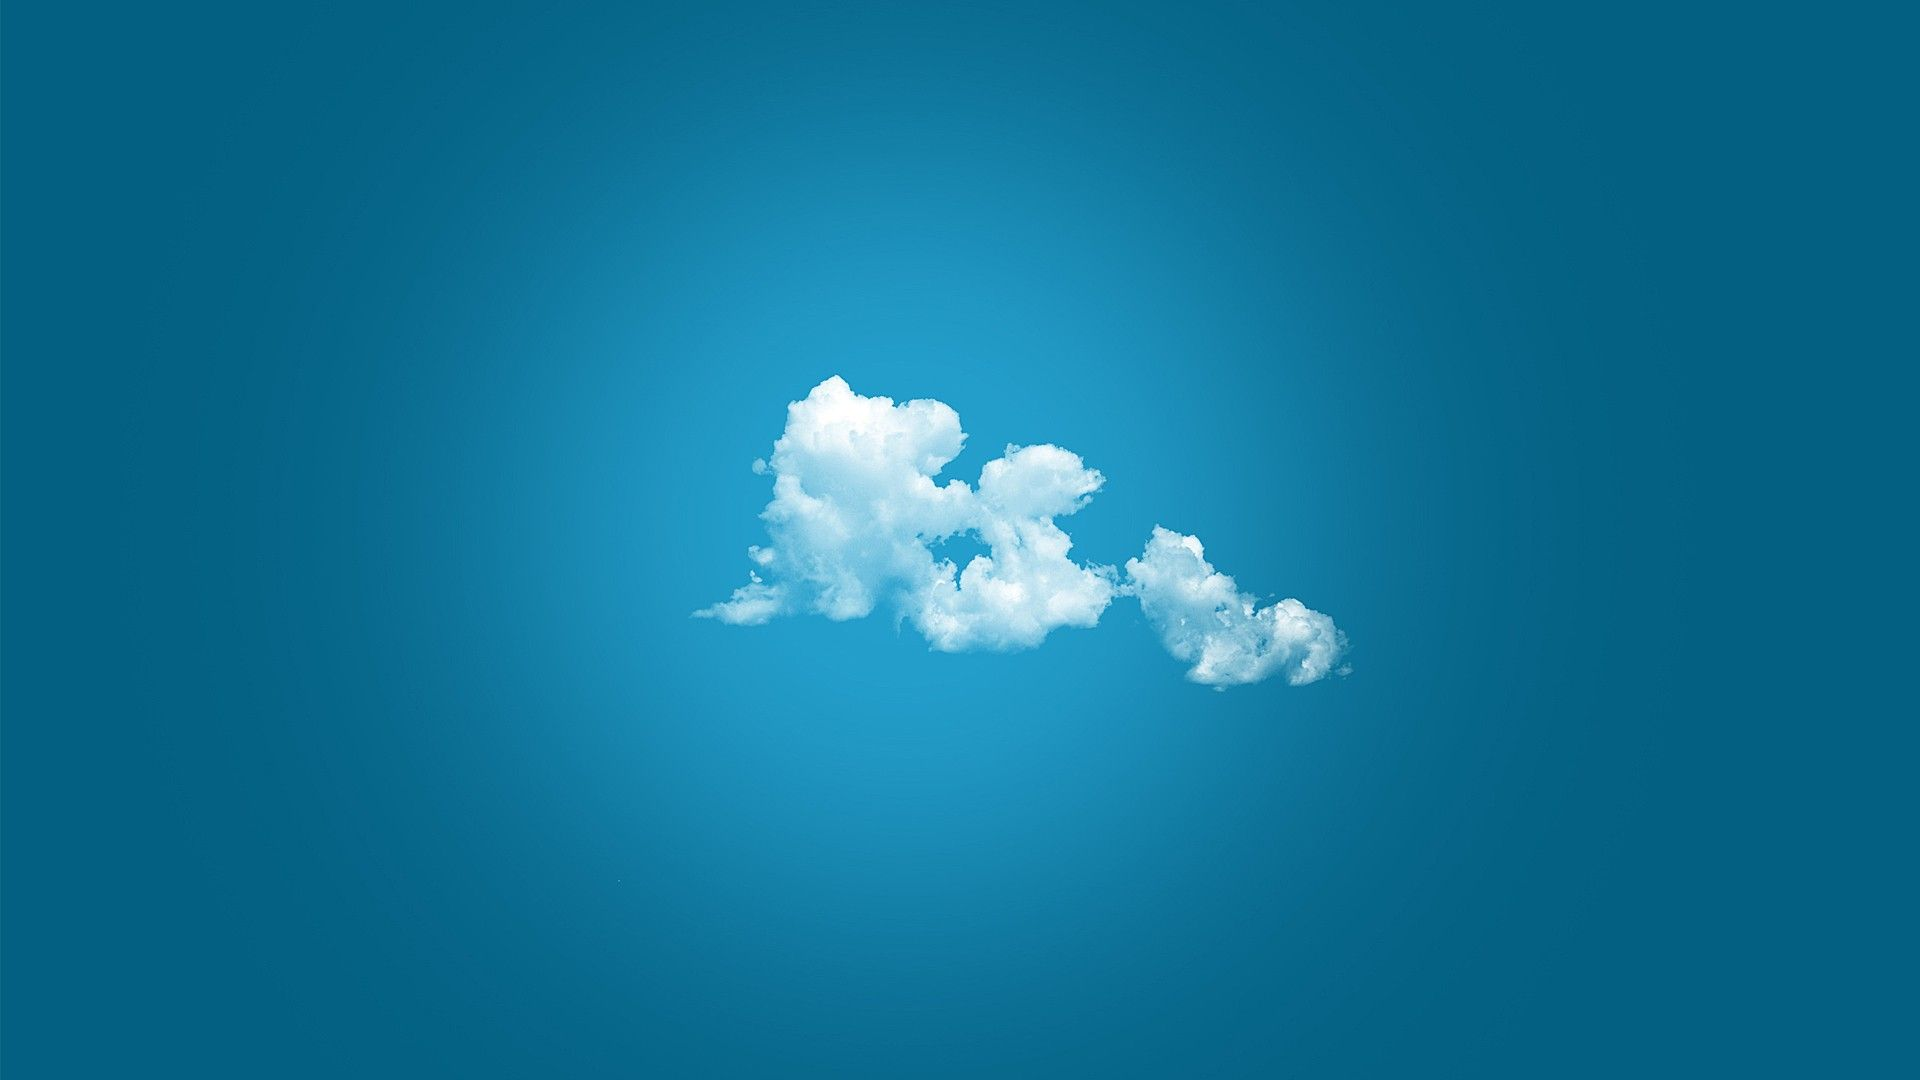 Minimalistic abstract clouds minimalistic skyscapes blue background / 1920x1080